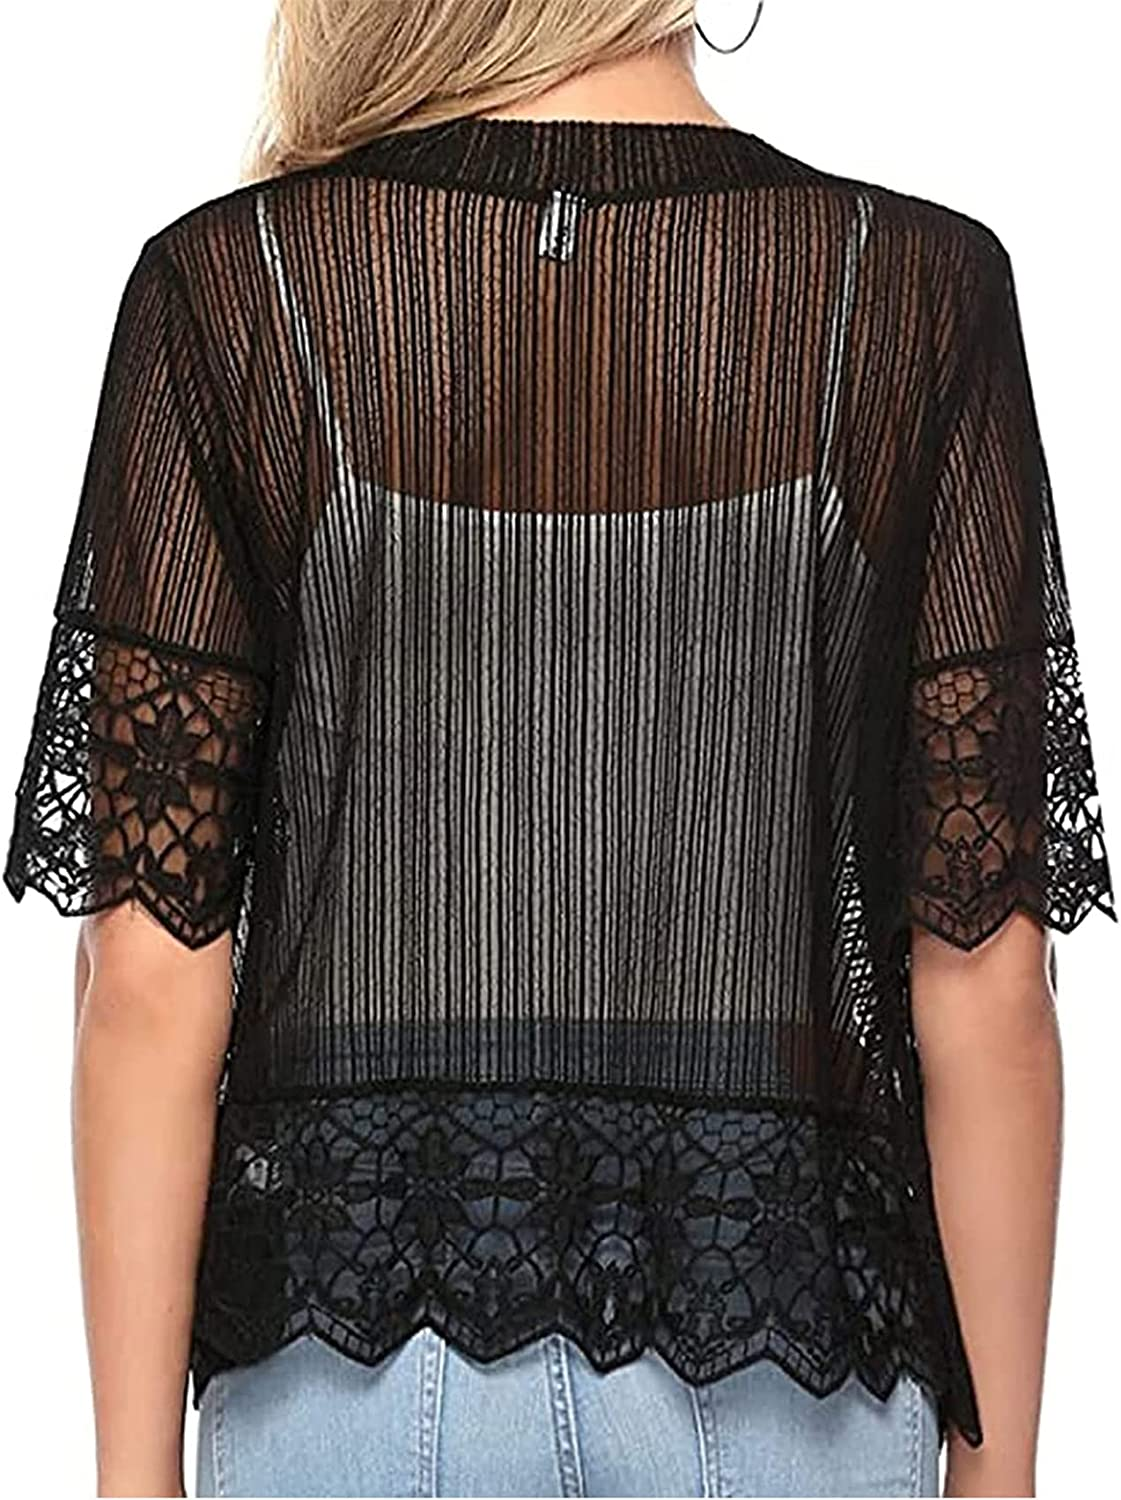 Womens Short Shrug Open Front Short Sleeve Sheer Cardigan Lace Patchwork Sheer Bolero Cover Up Cropped mesh Cardigans